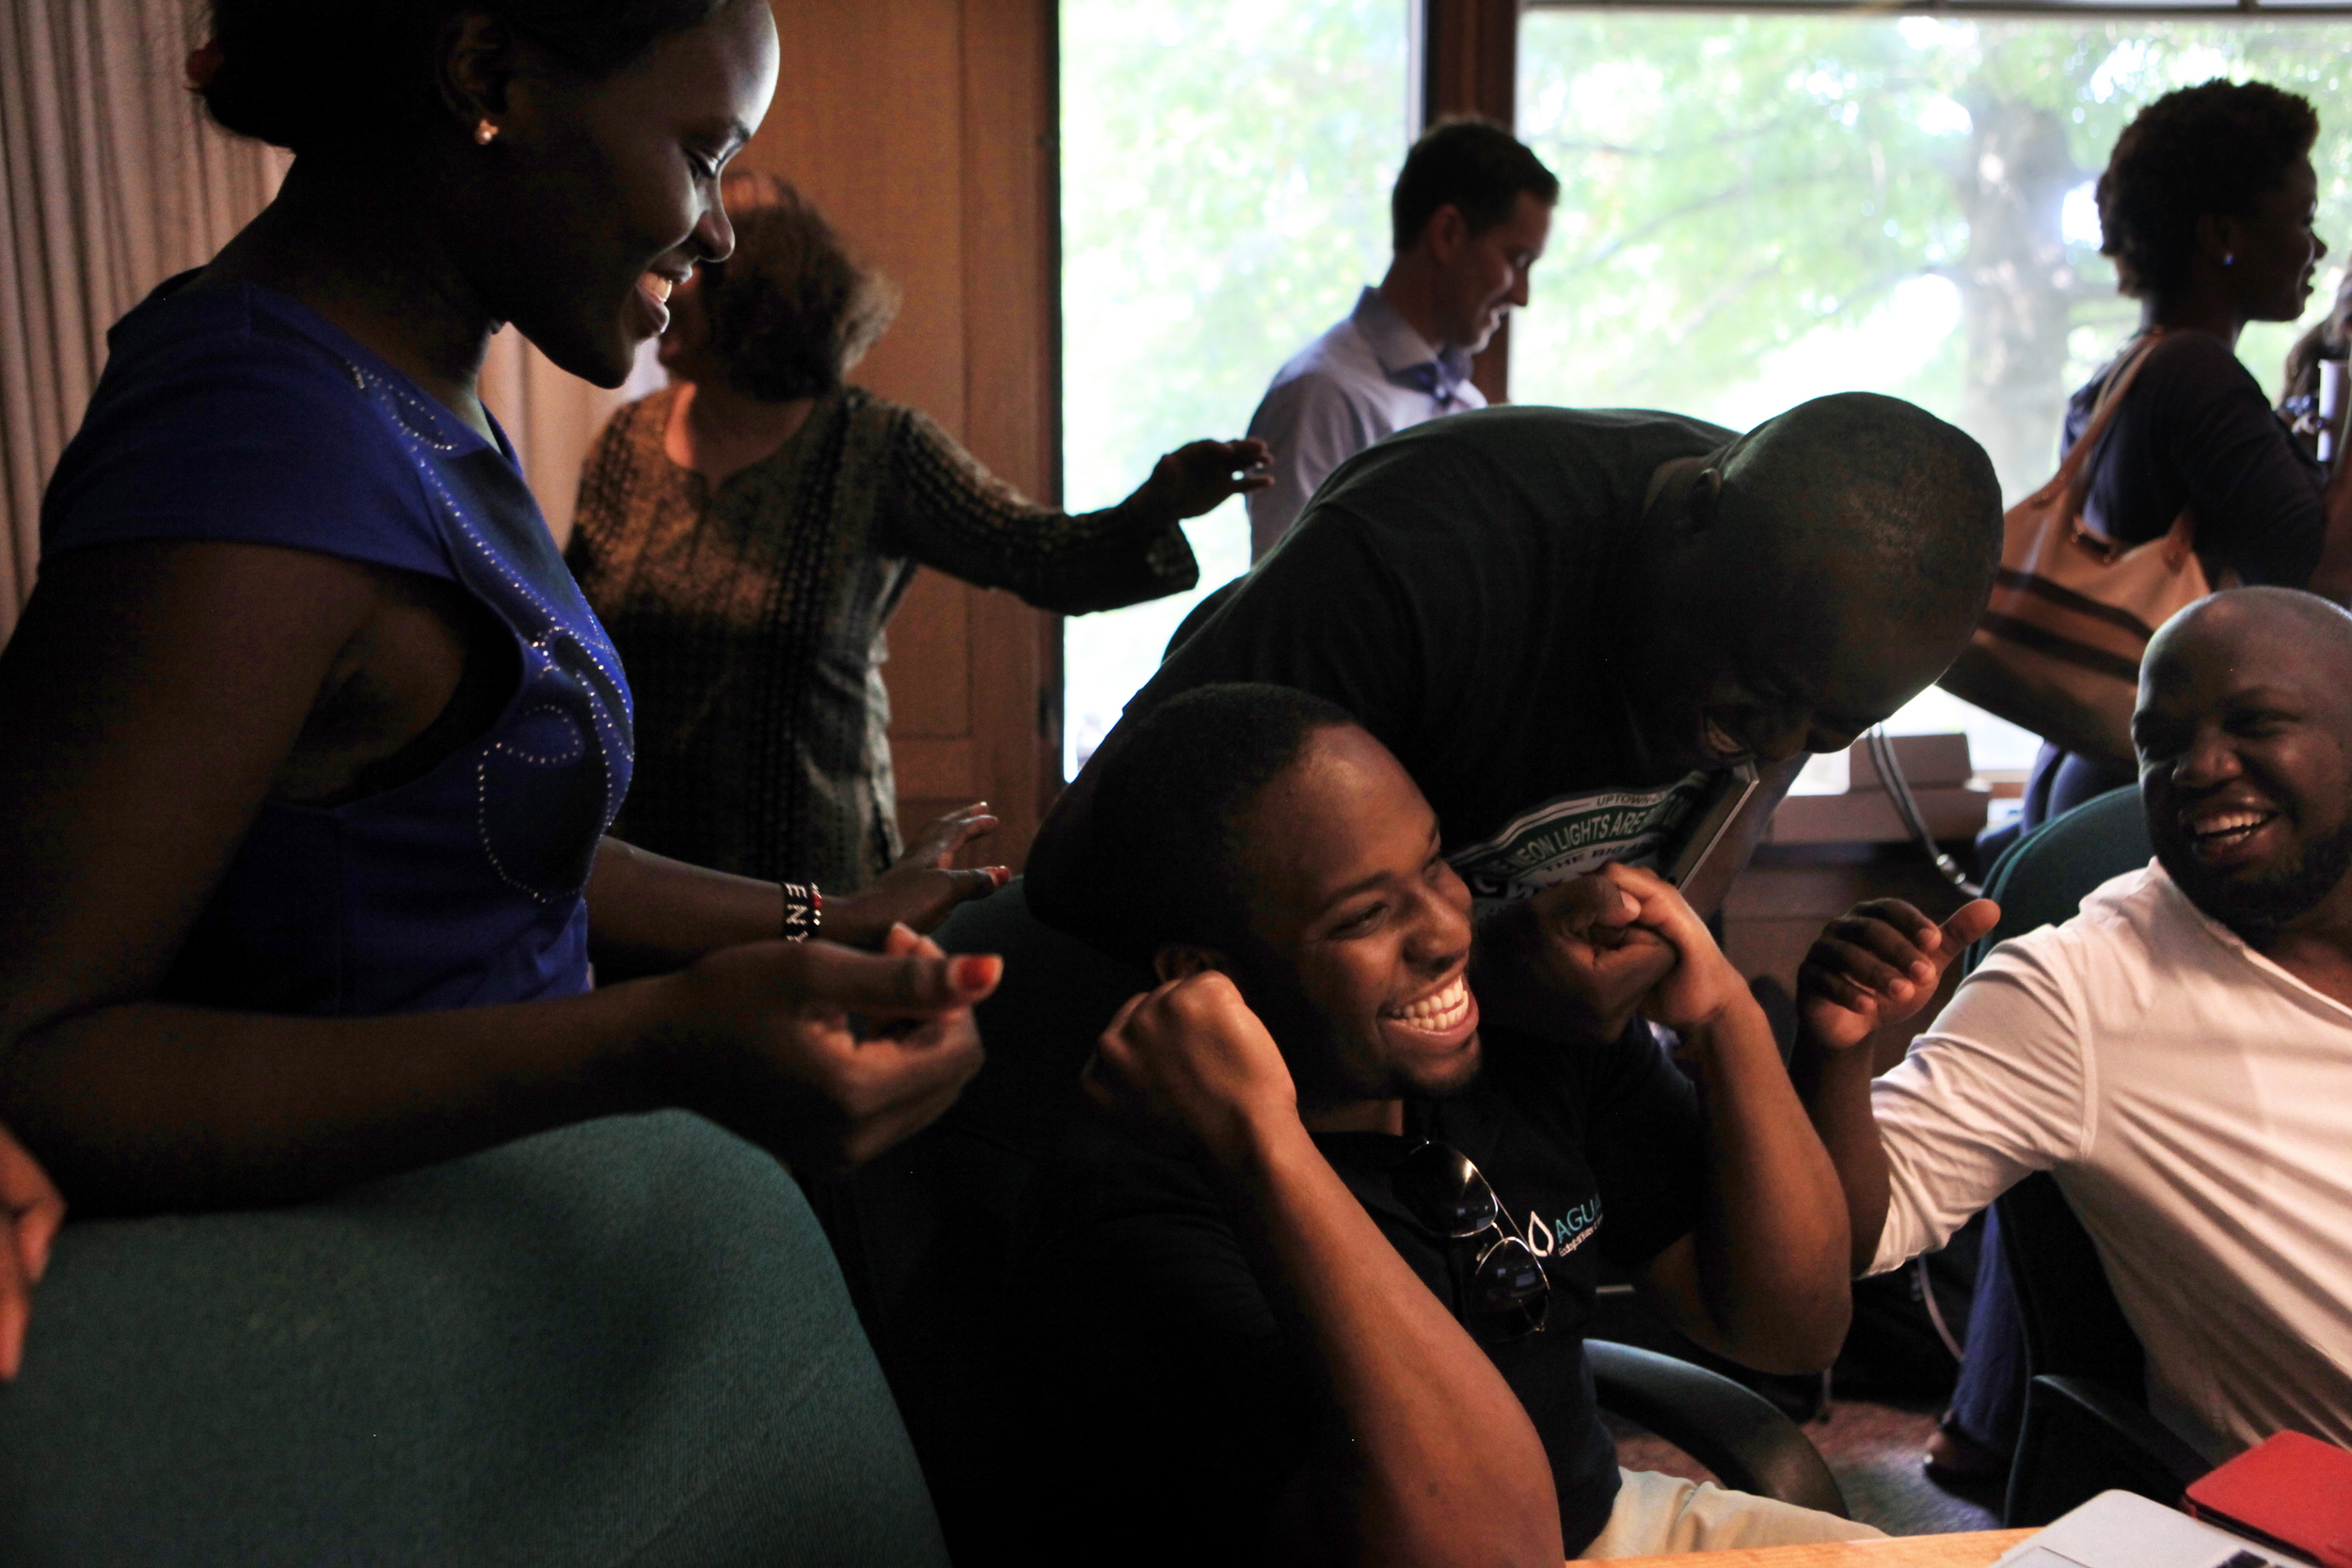 Lydia Munika, of Kenya, left, Bruce Ernest, of Zambia, second from right, and Tumiso Mabusela, of Botswana, right, congratulate Mshila Sio, of Kenya, middle, after he learned that he received a grant during the last week of the Young African Leaders Initiative at Dartmouth College in Hanover, N.H. on July 23, 2014.